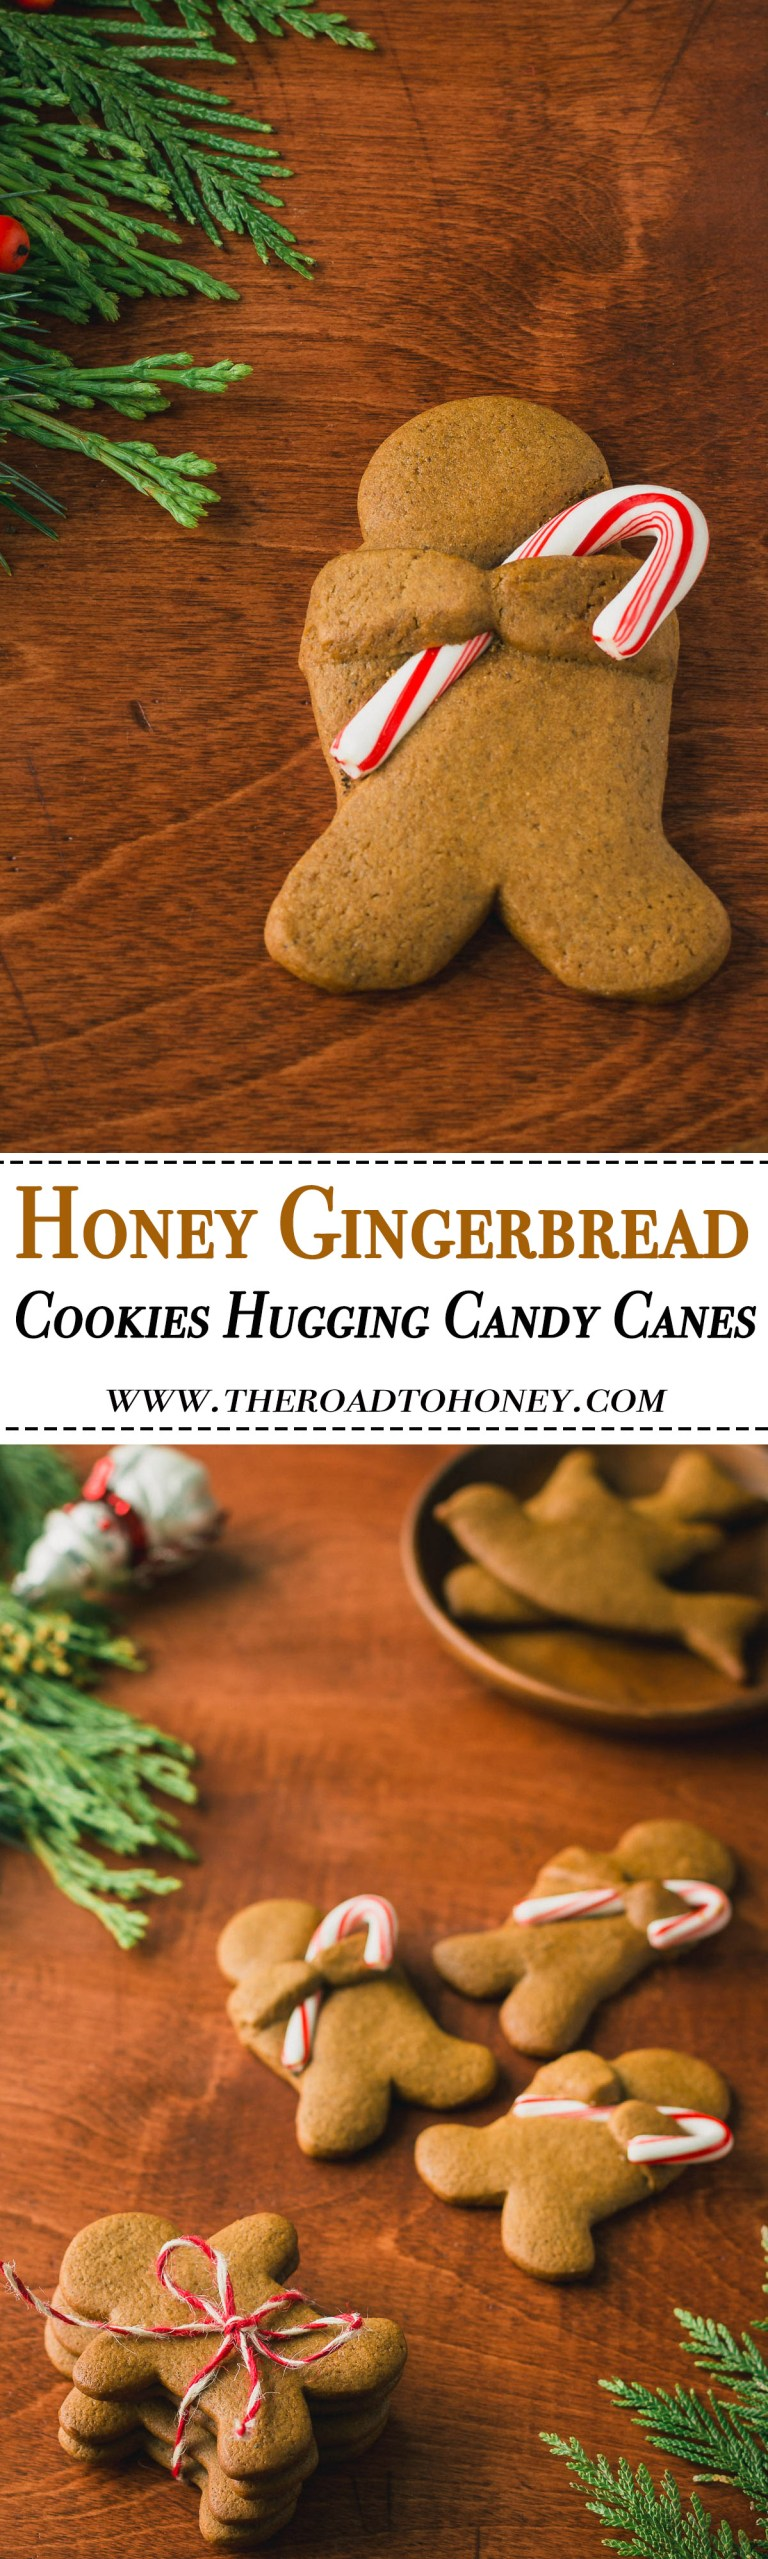 Honey Gingerbread Men Cookies Hugging Candy Canes - Nothing says Christmas & the holidays more than the warm, spicy notes of gingerbread.These gingerbread cookies are made all the more special with a touch of honey & a drizzle of lemon icing. And for a cute spin on your little gingerbread dudes, wrap their arms around miniature candy canes or string a few up on a ribbon & use as a festive holiday garland.#Gingerbread #EdibleGifts #ChristmasCookies #HolidayCookies #Cookies #Recipe